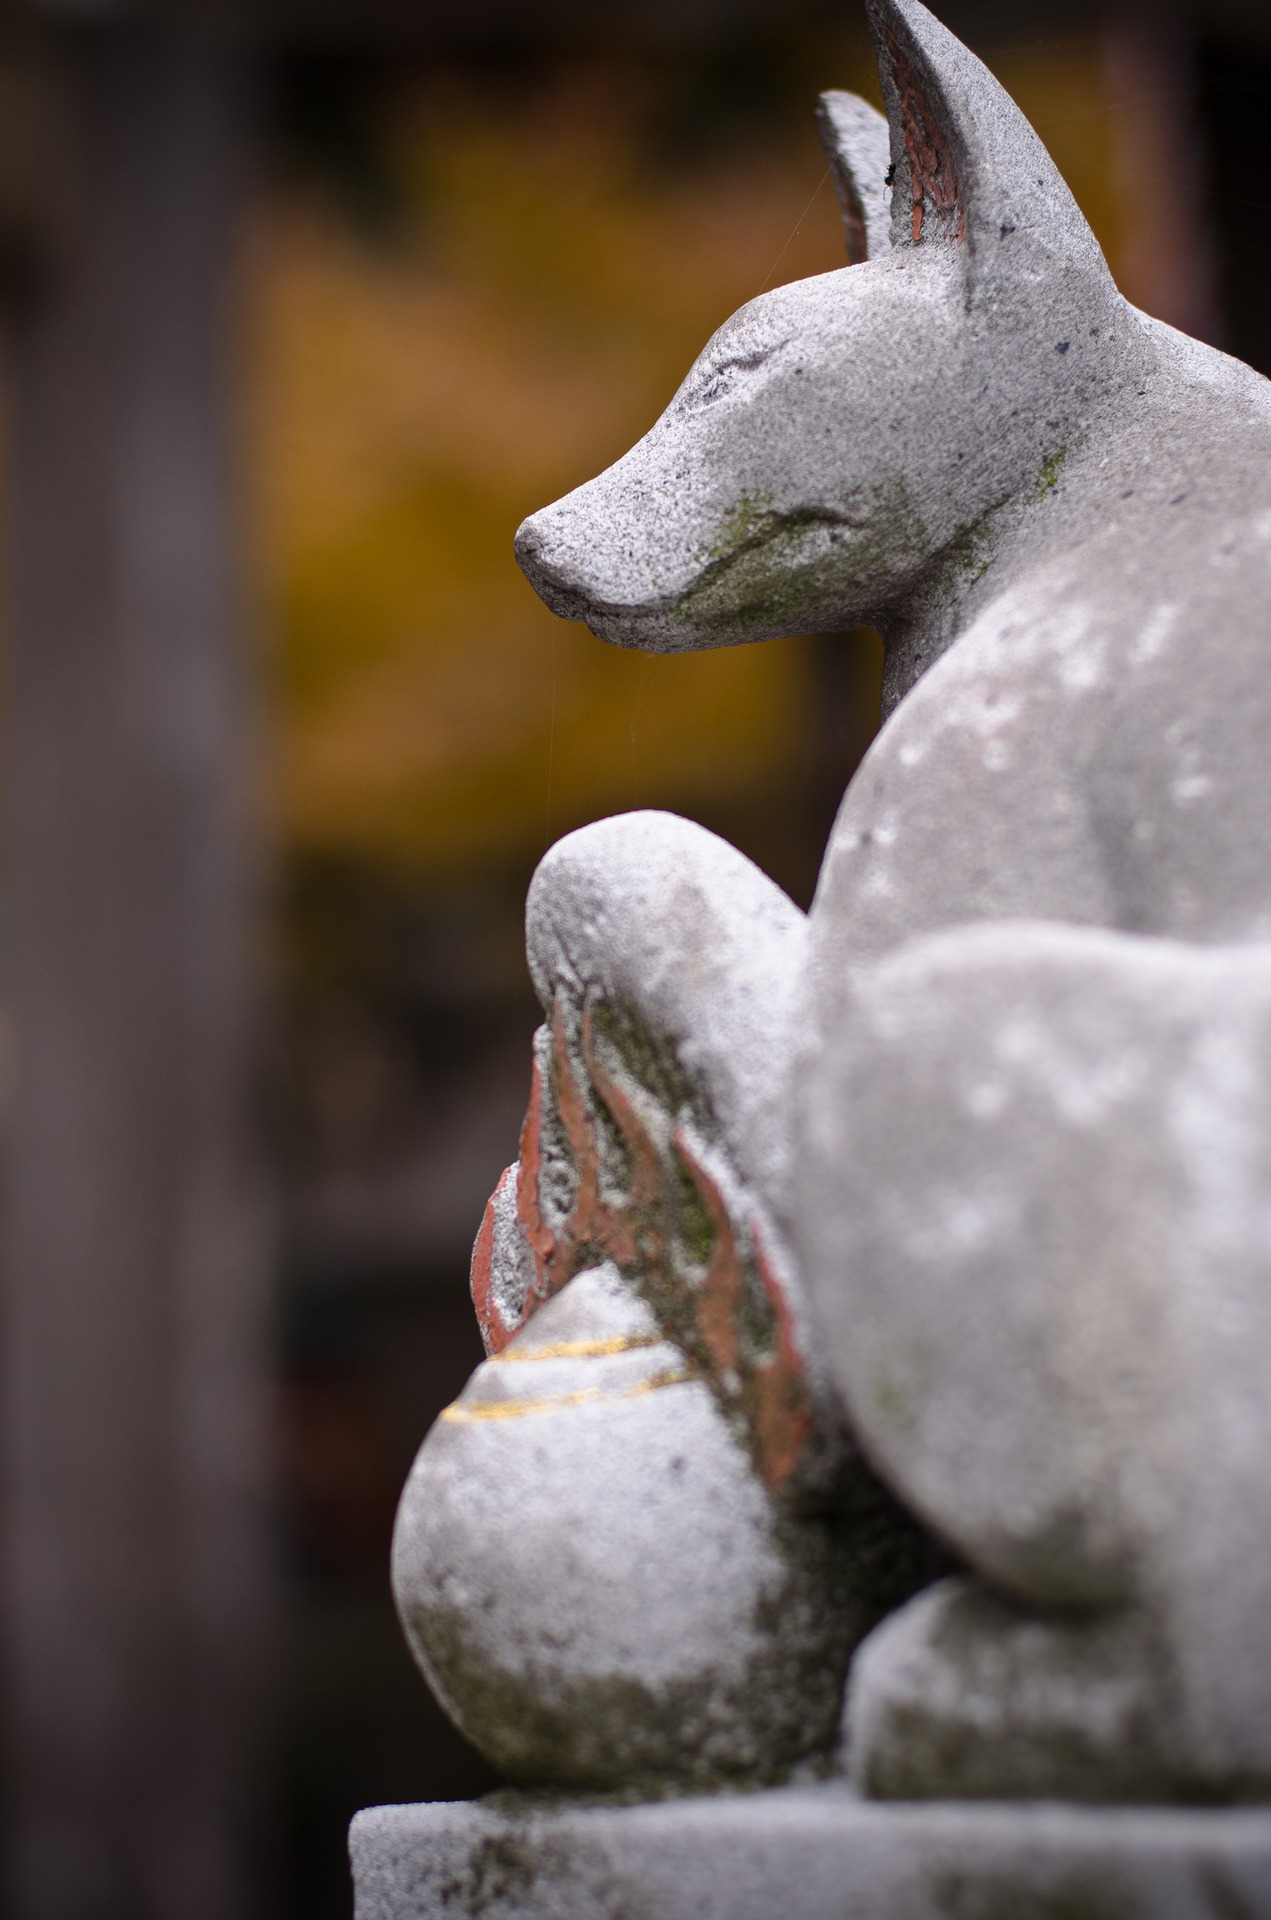 The shrine is dedicated to the Inari, or fox spirit, so it had many cute little fox statues all over.